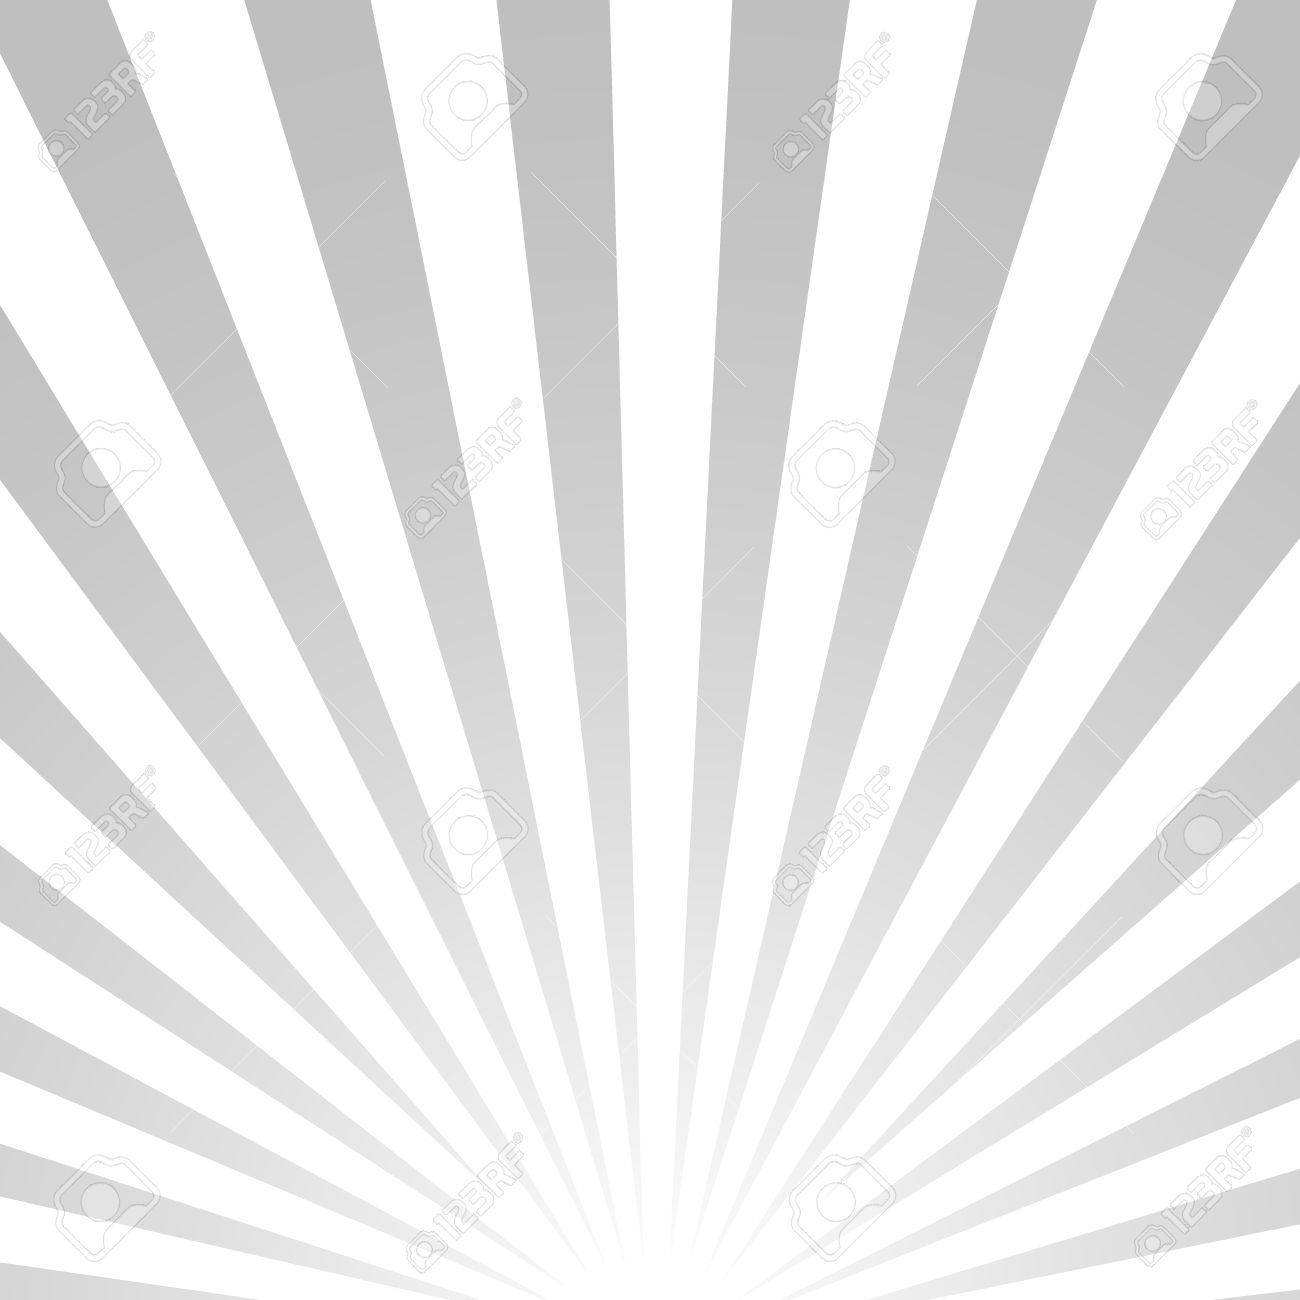 Grey striped clipart  Clipground